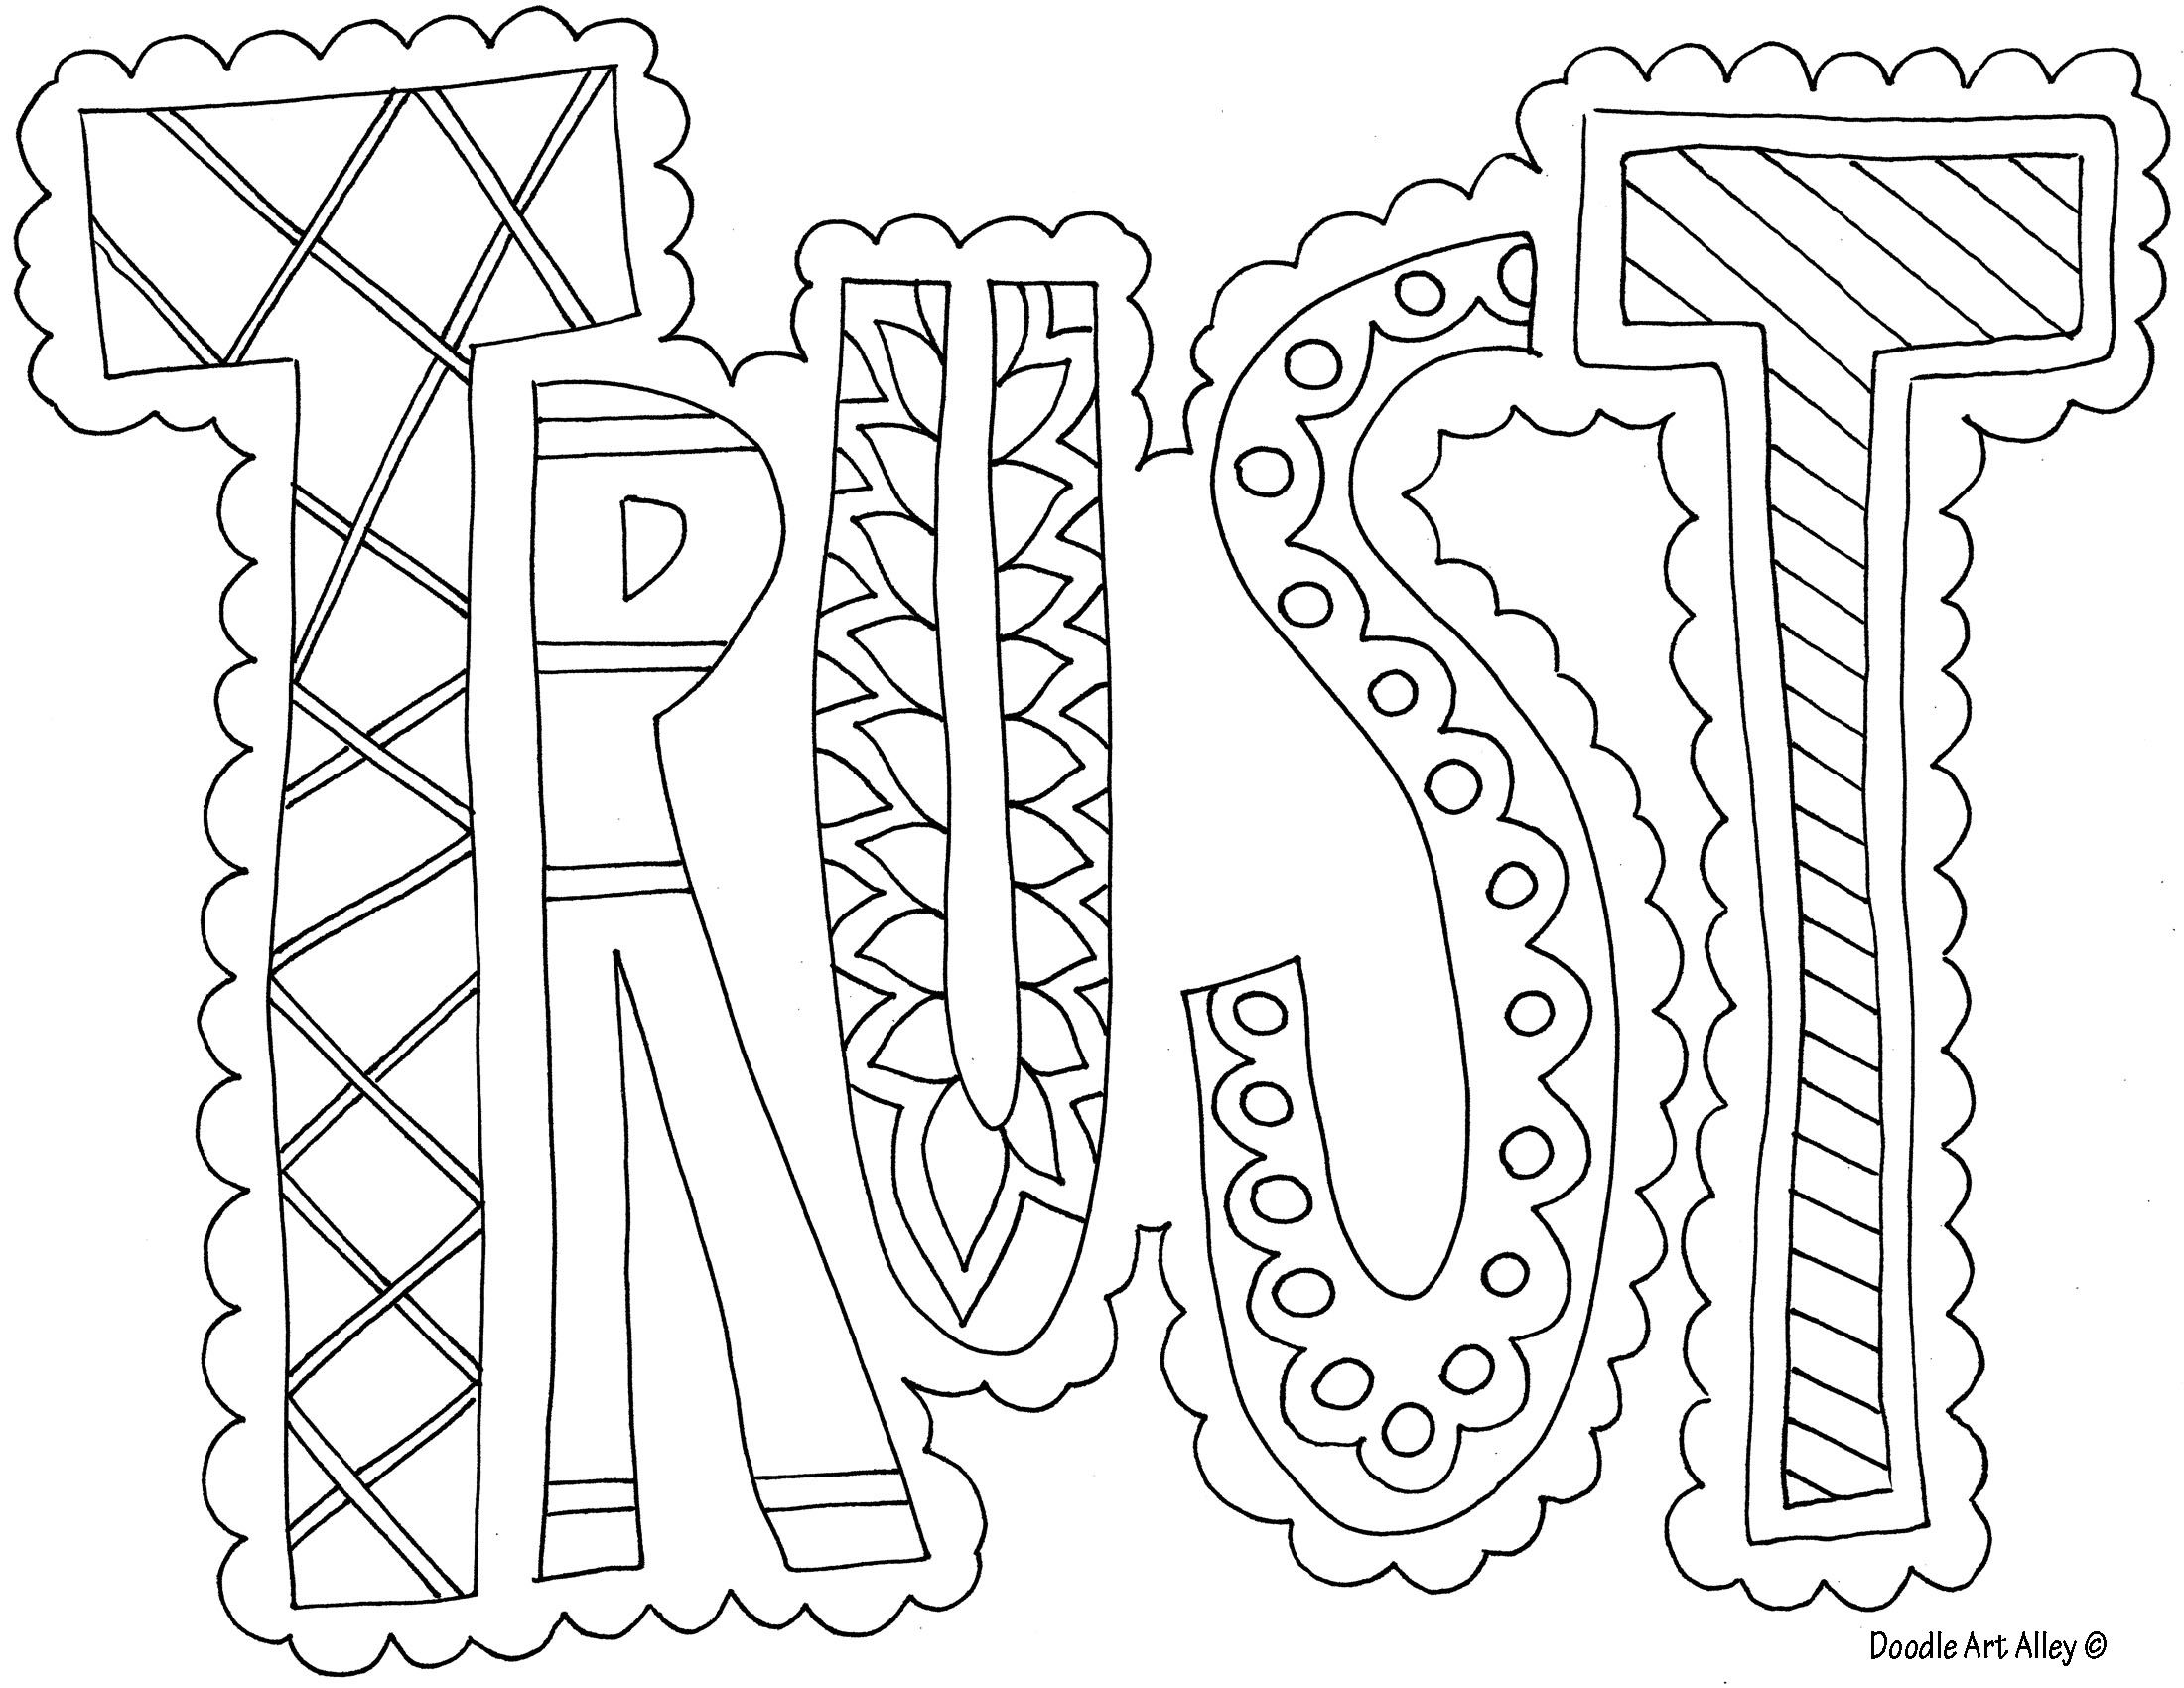 Church bible pinterest for Trust god coloring page